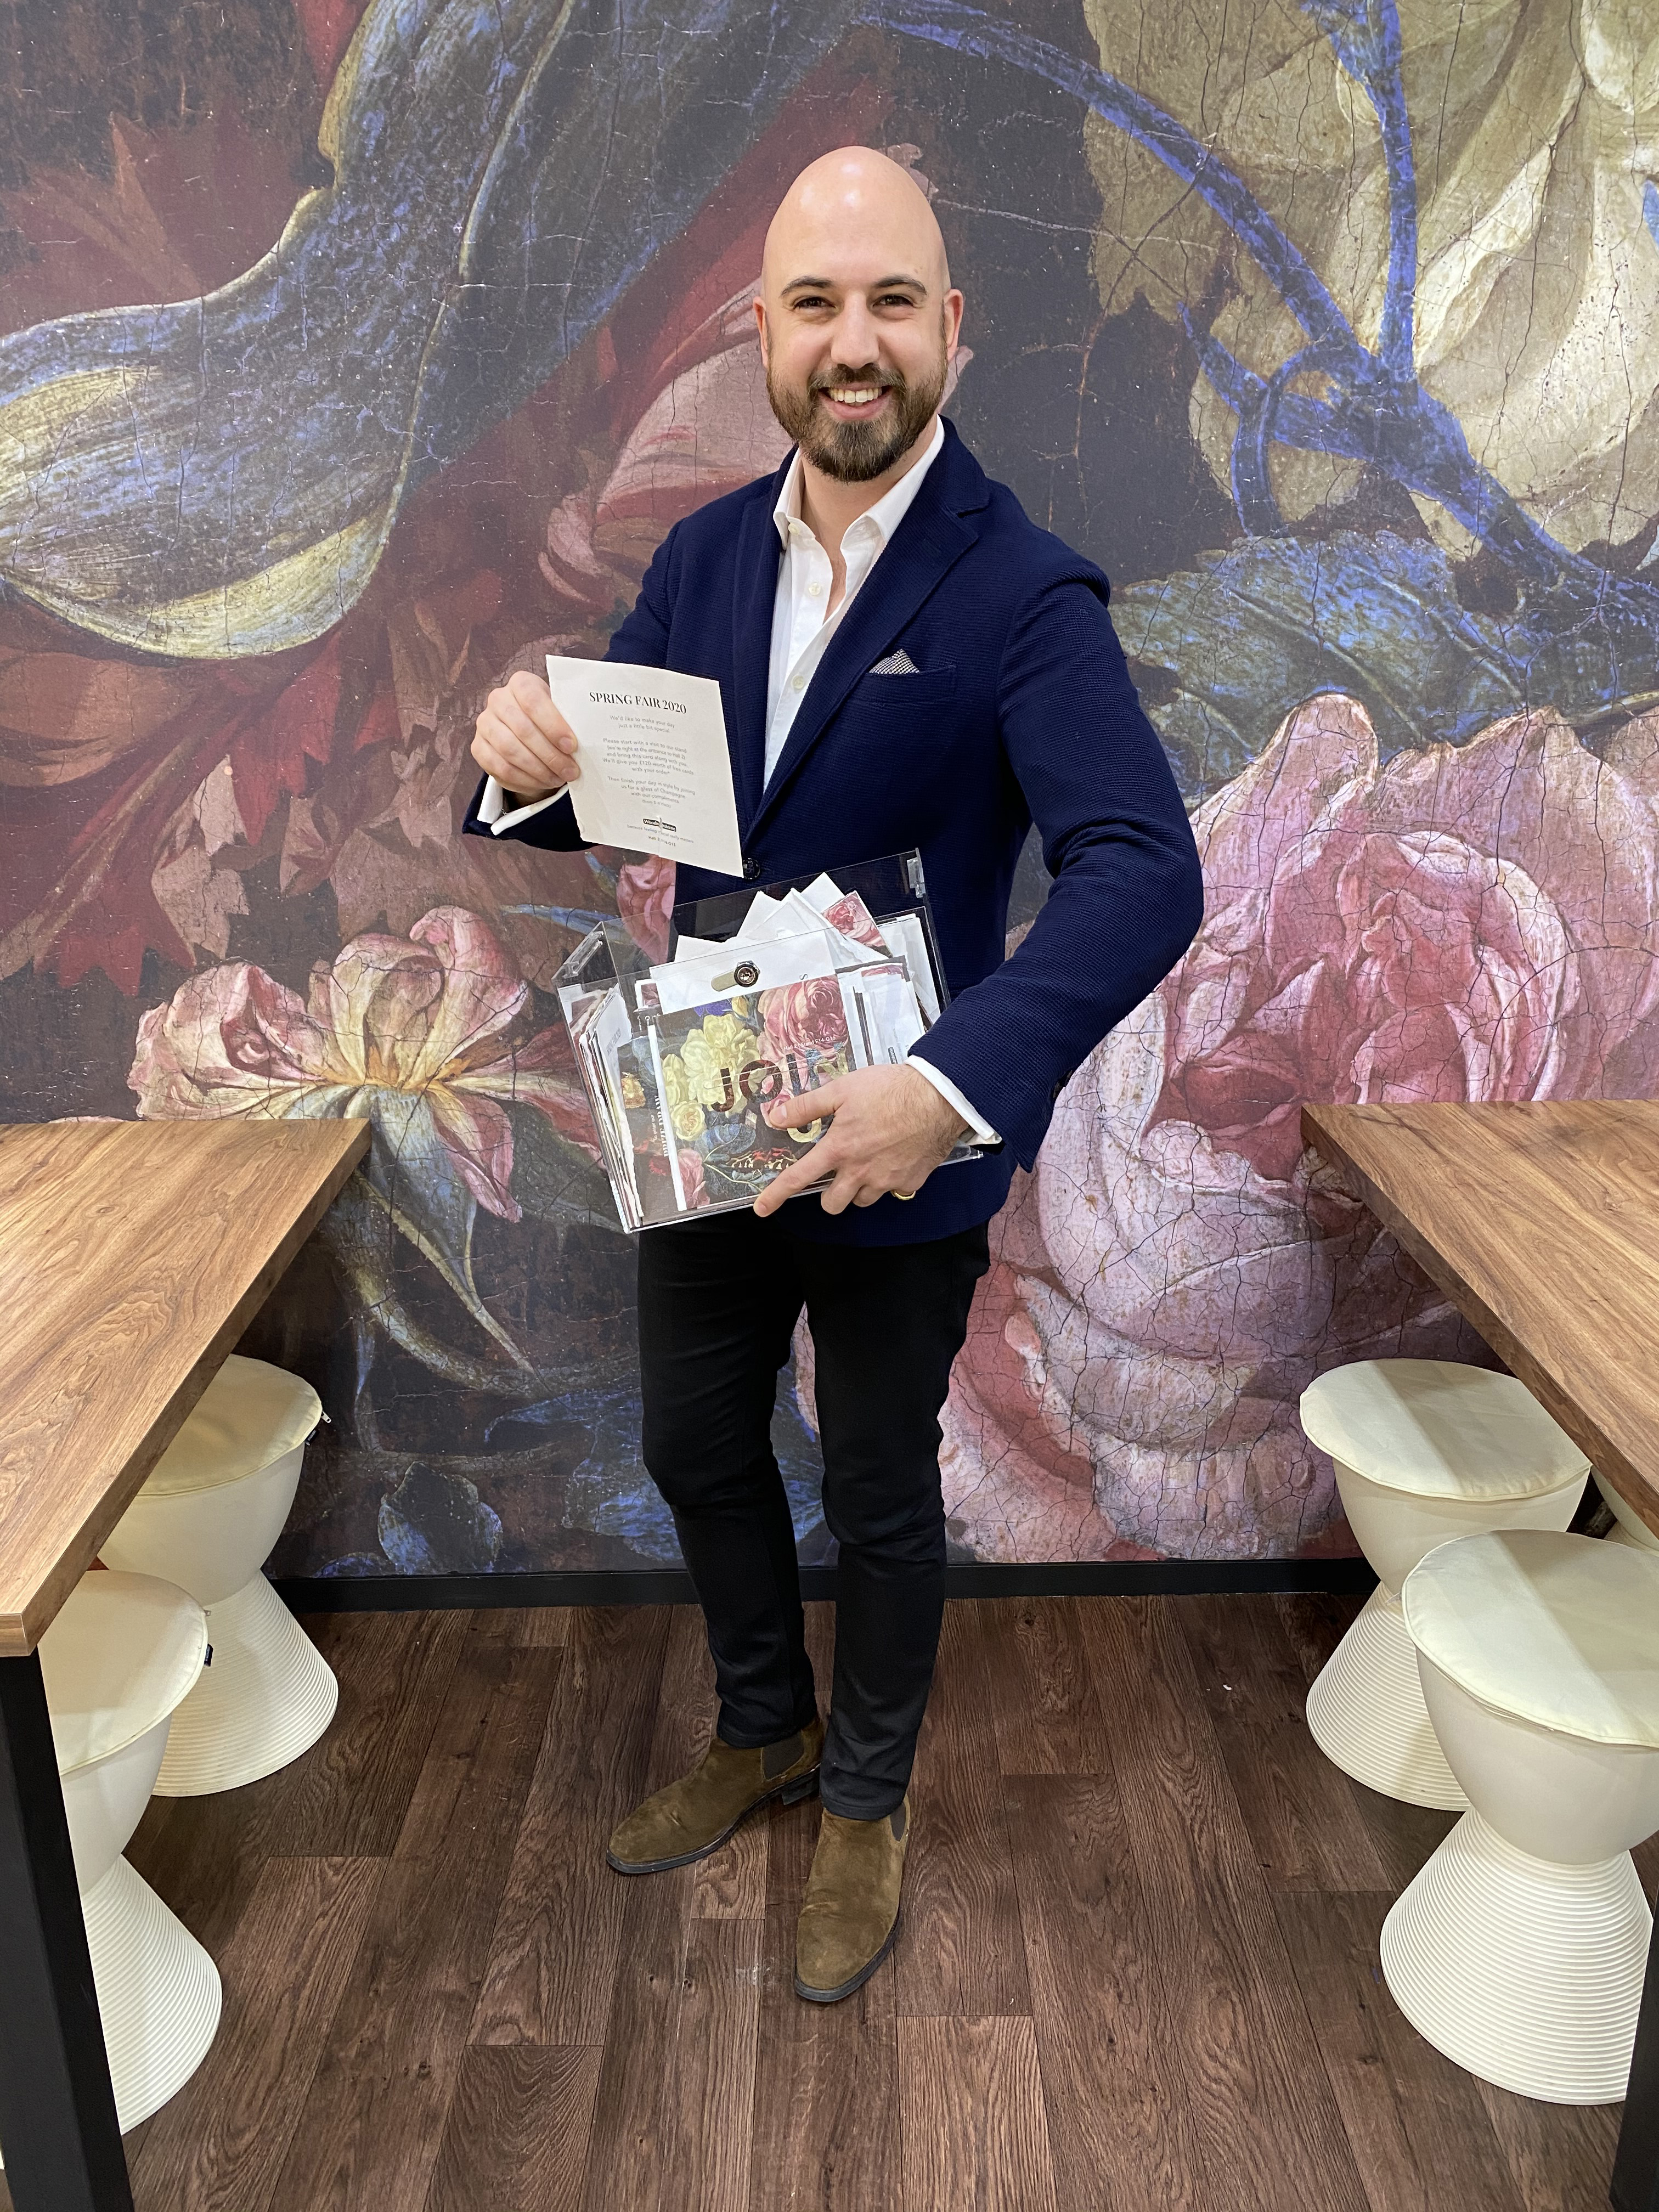 Above: Seth Woodmansterne, managing director incumbent of Woodmansterne Publications with a box full of entries to its Spring Fair prize draw.